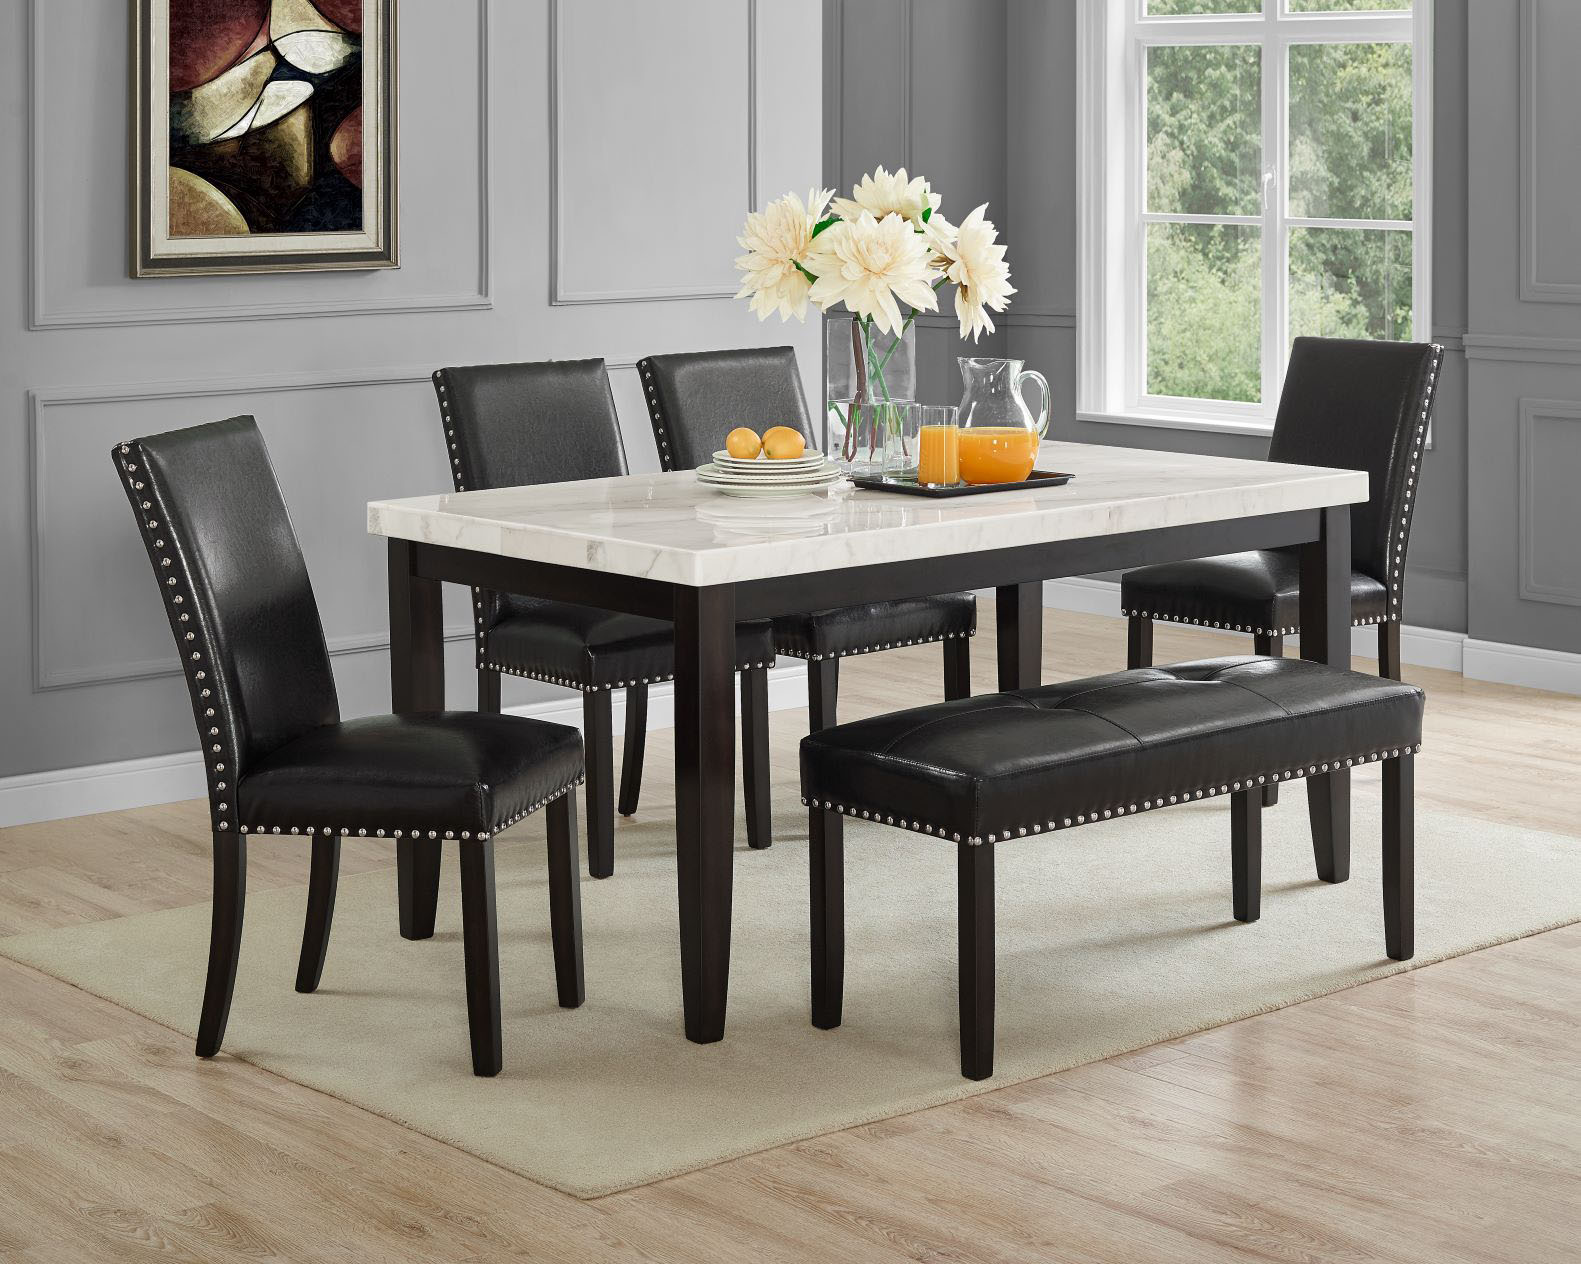 Steve Silver Westby Carrera Marble 5 Piece Dining Set